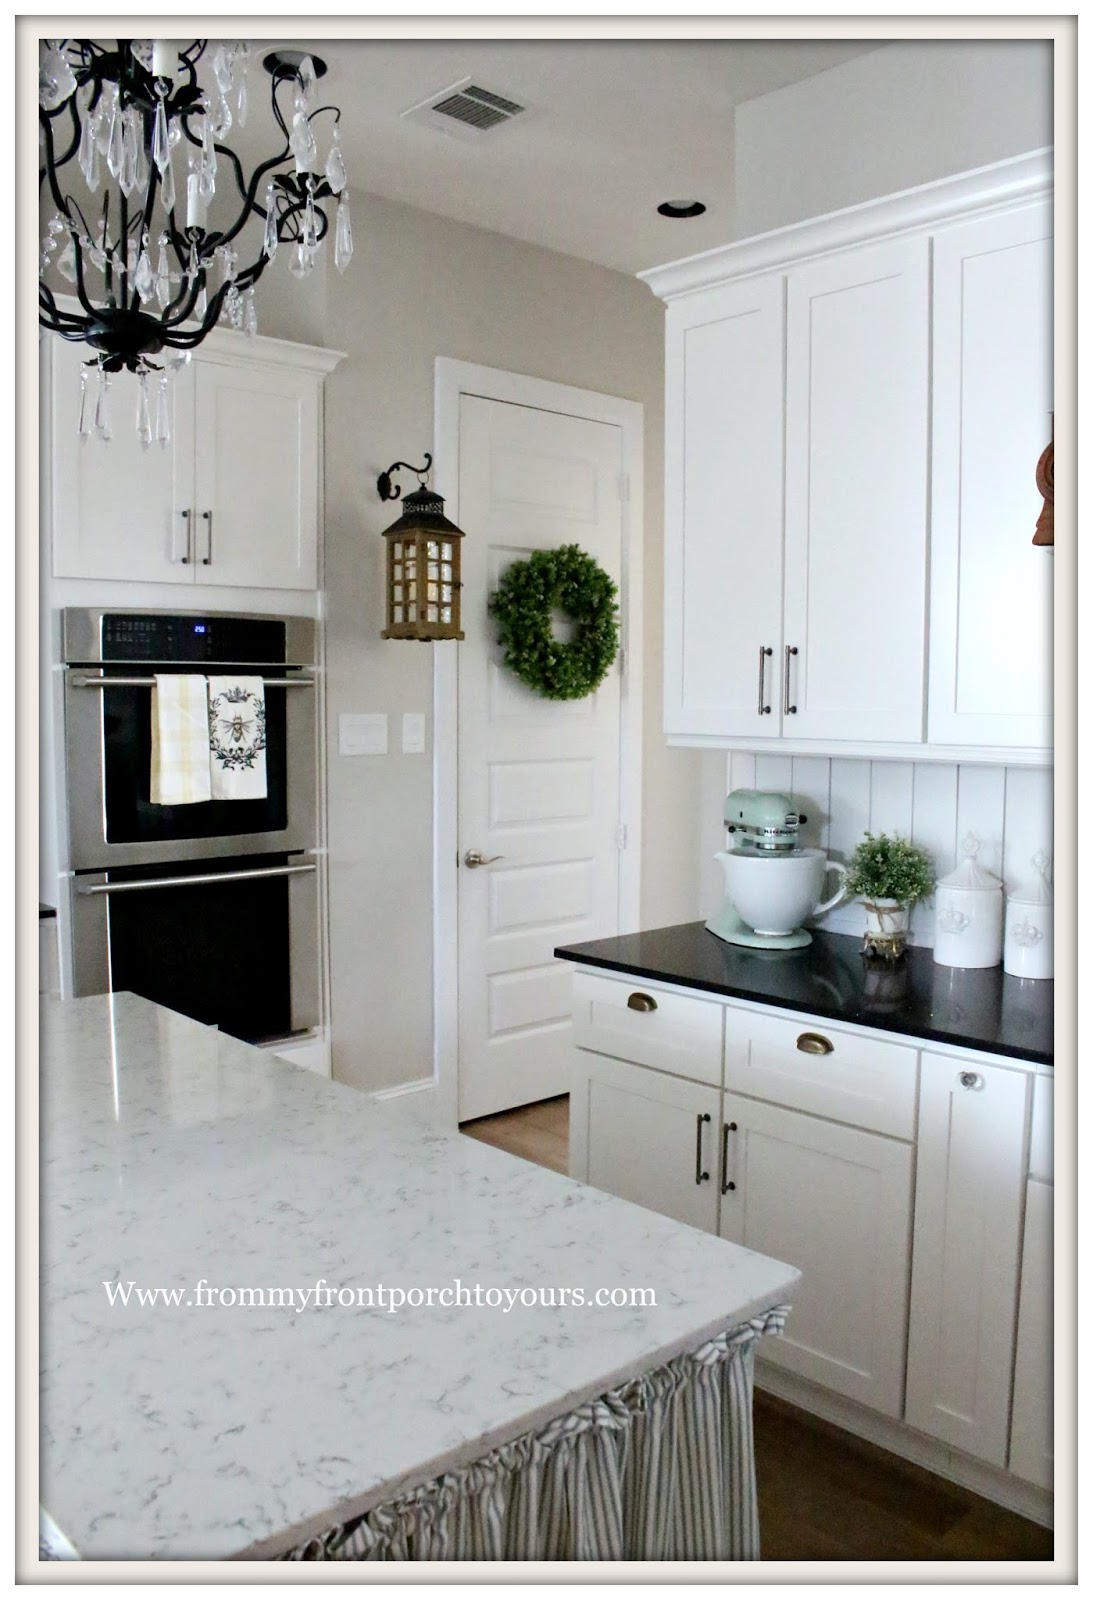 Repaint Kitchen Cabinets Timers From My Front Porch To Yours: Simple Winter French Country ...